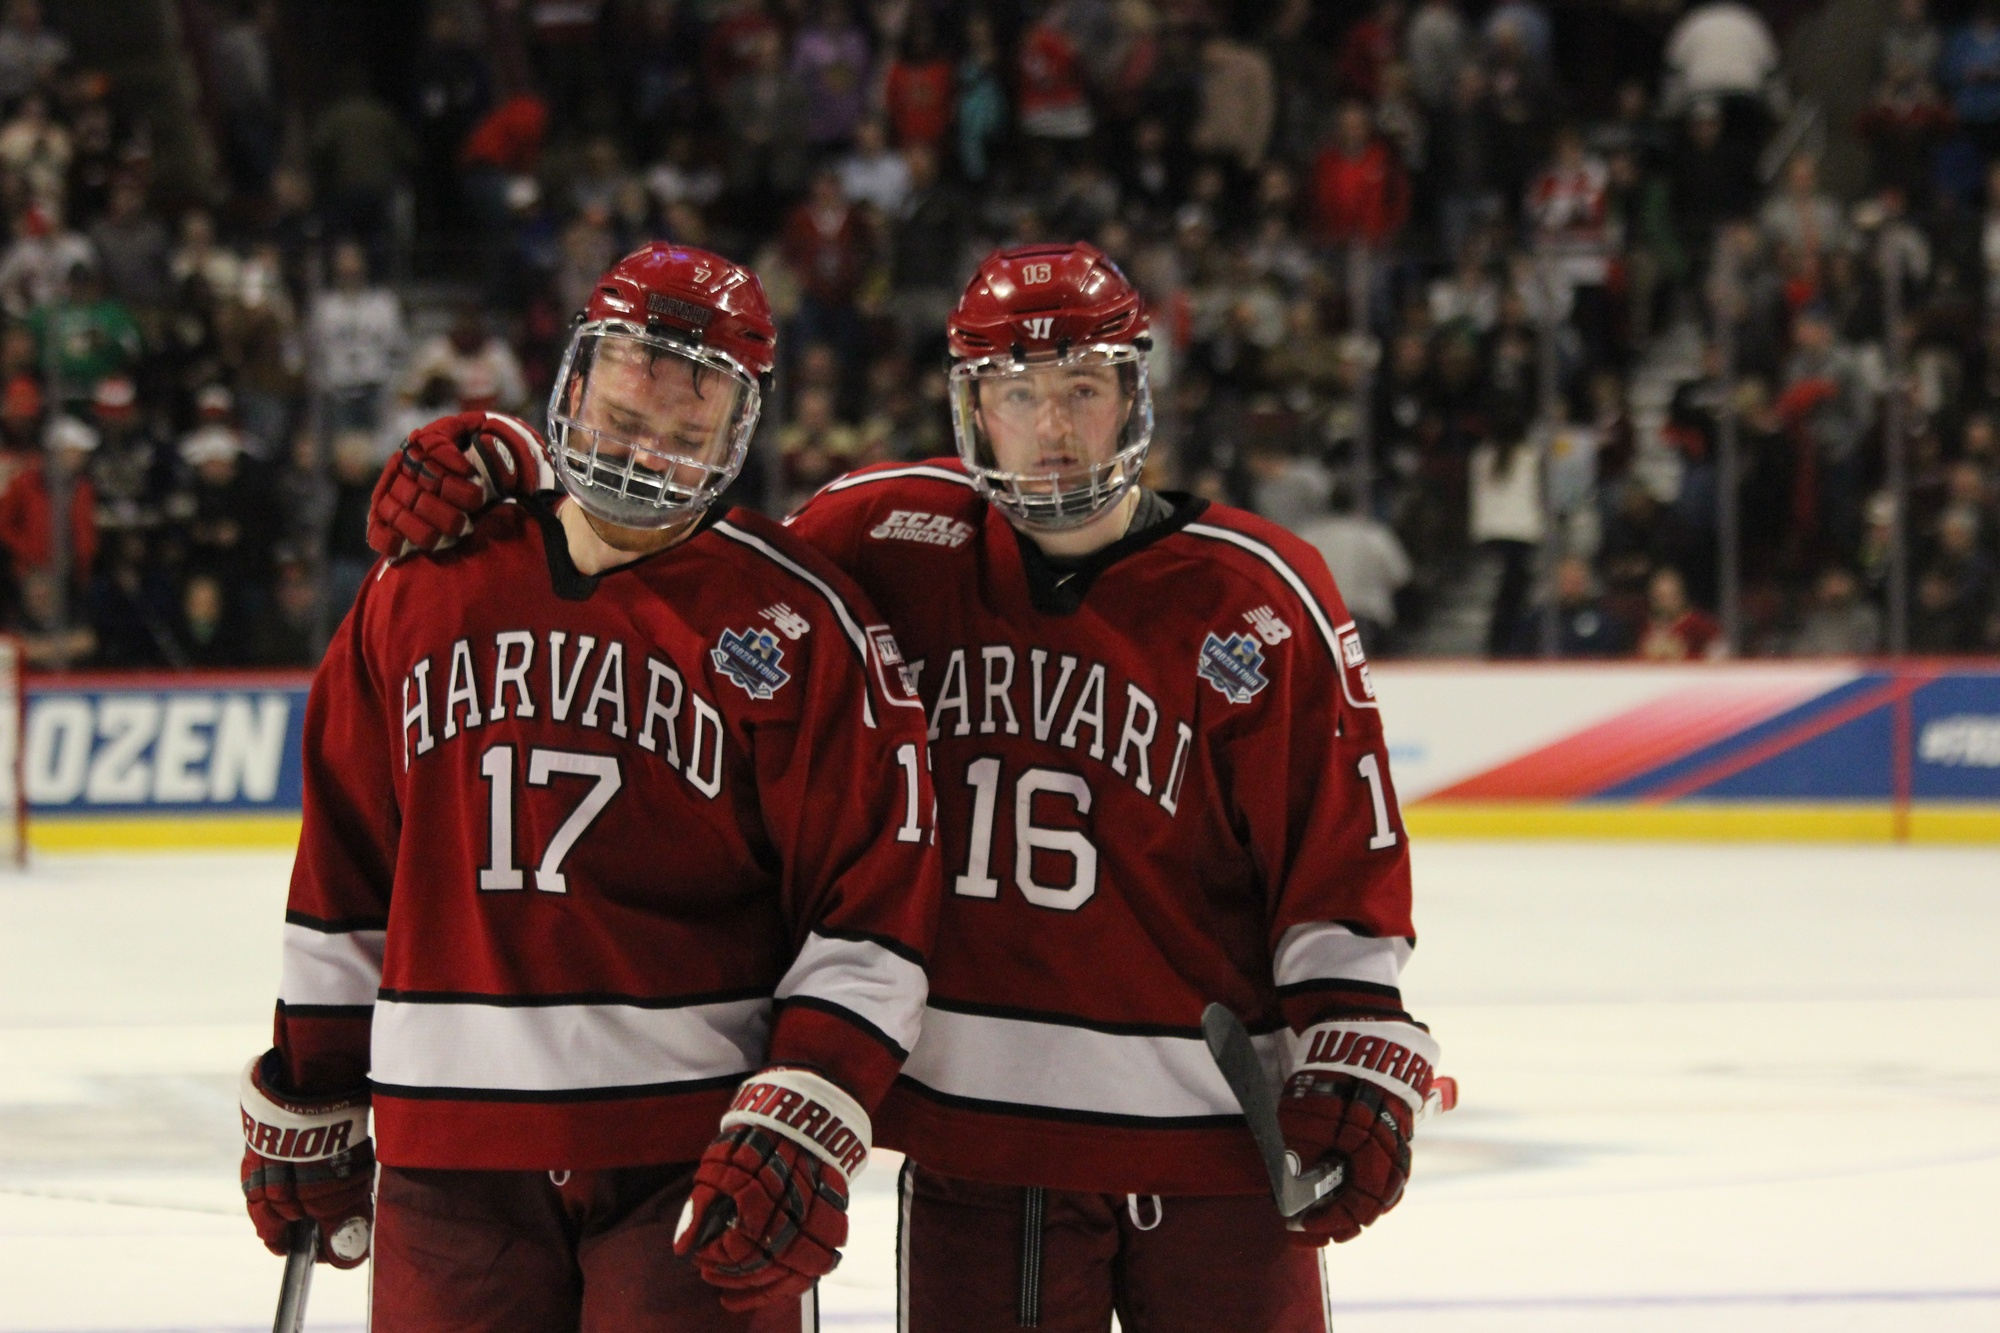 Sophomore Ryan Donato consoles senior Sean Malone just after the Frozen Four semifinal loss.